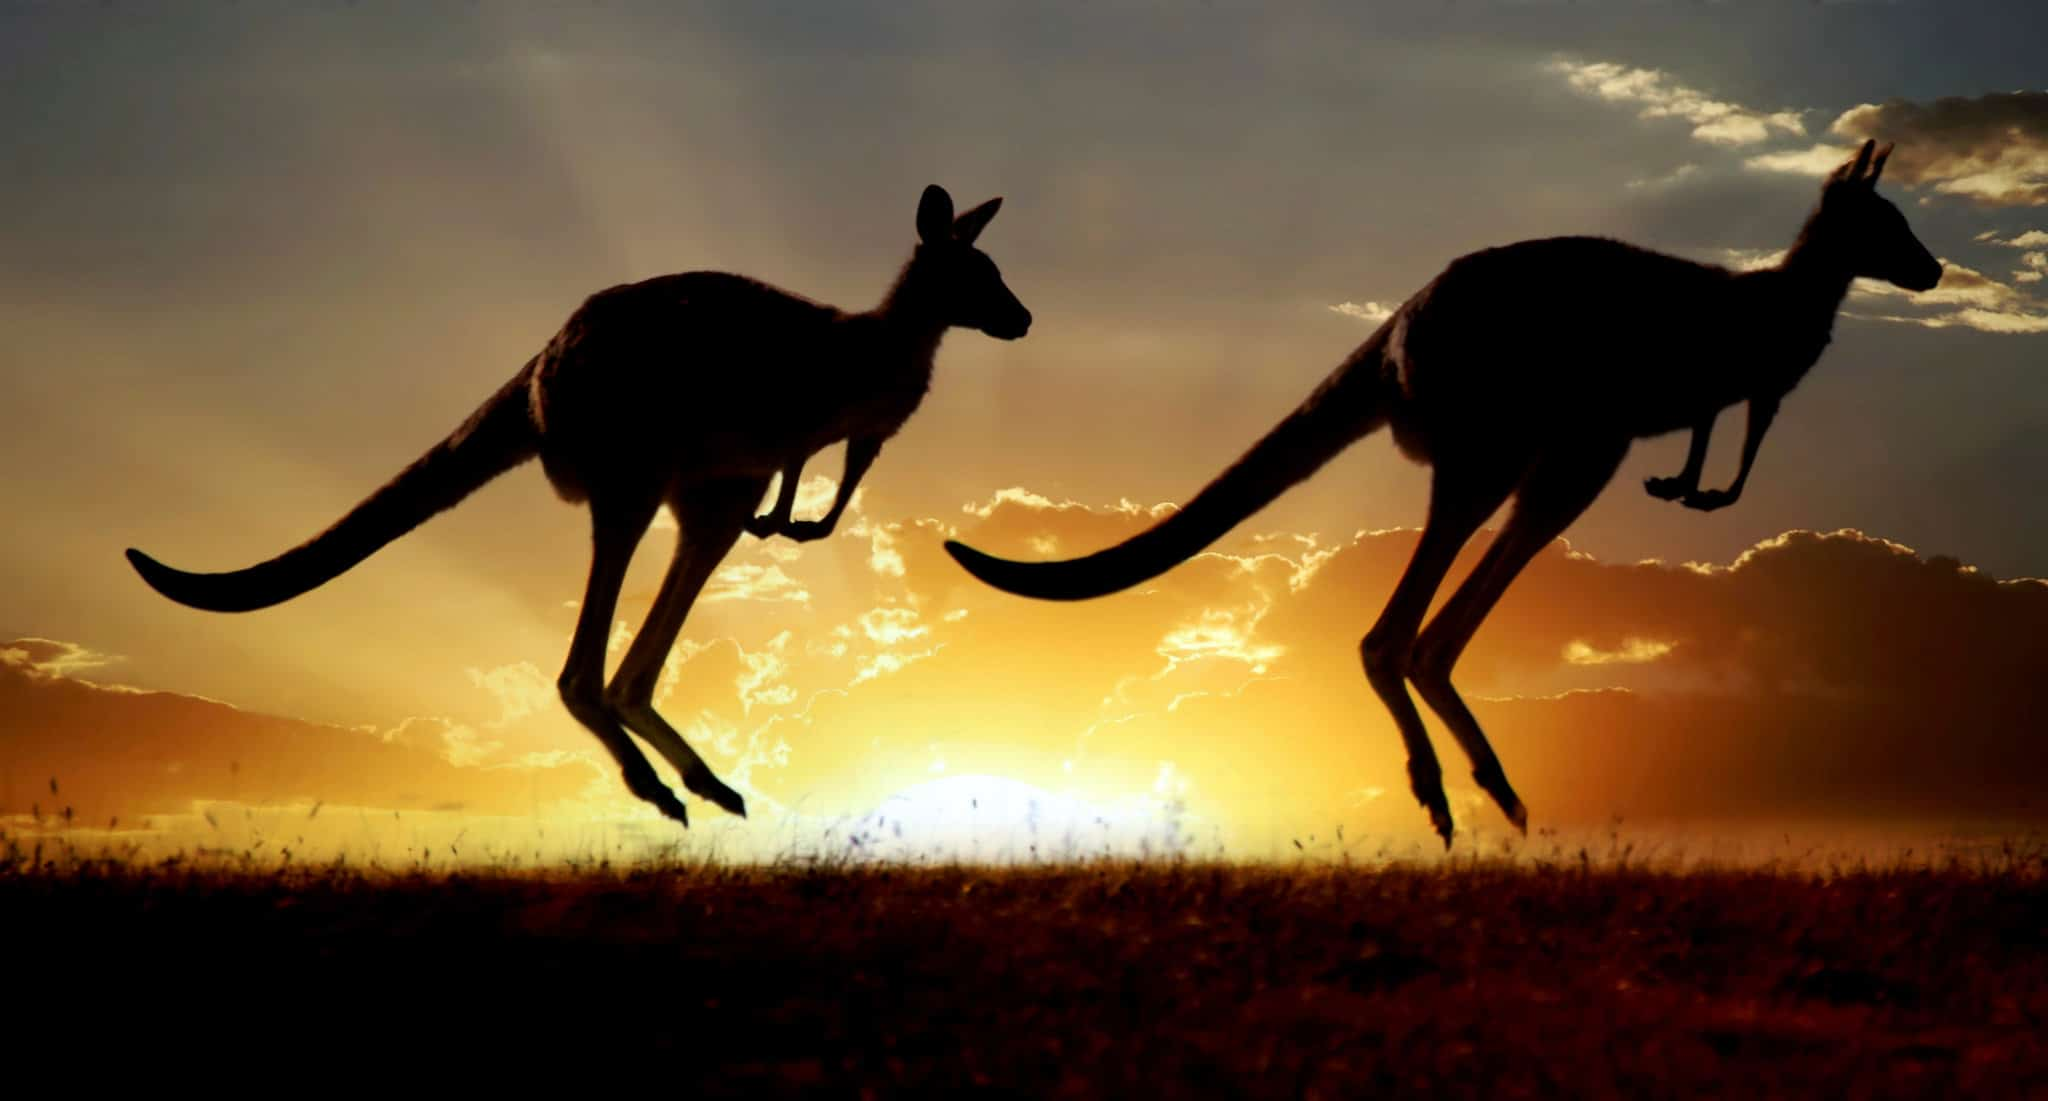 Kangaroos use their tails for balance whilst hopping